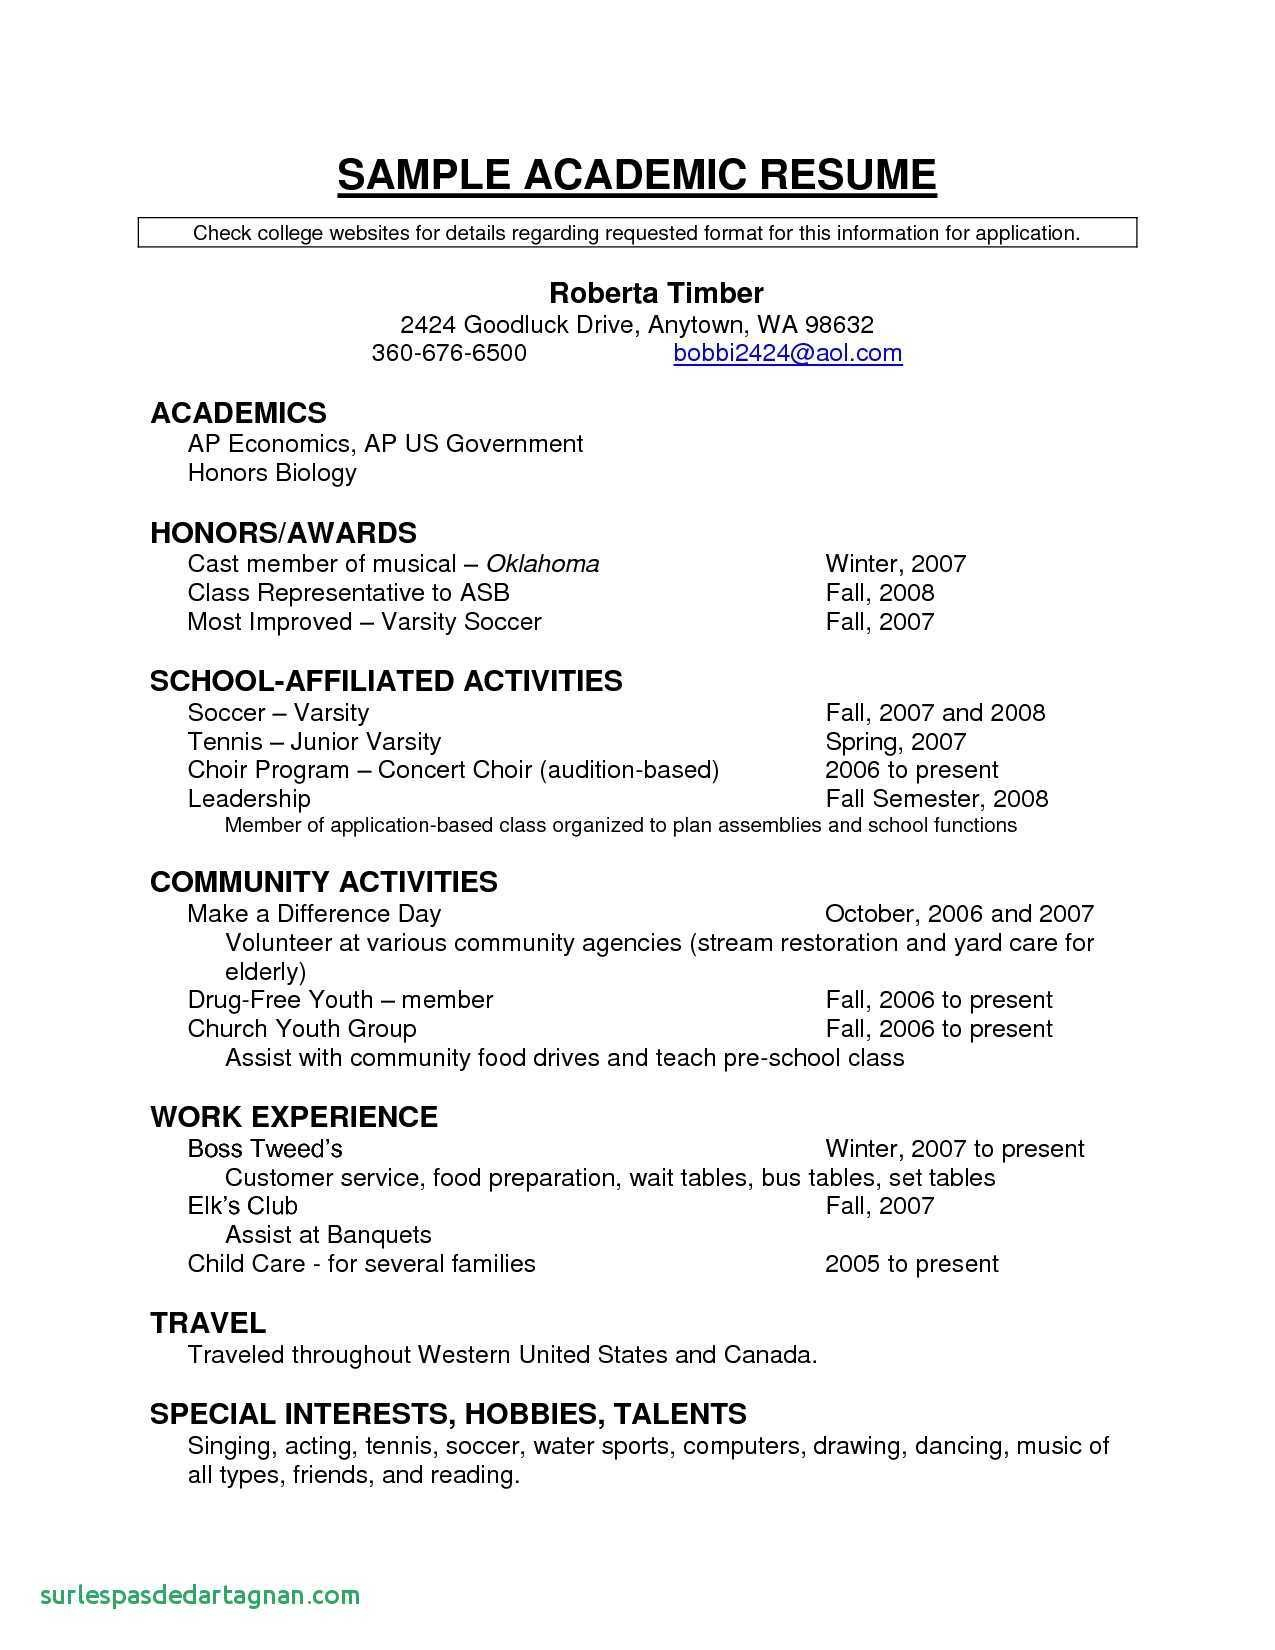 proposal resume template example-Information 11-n